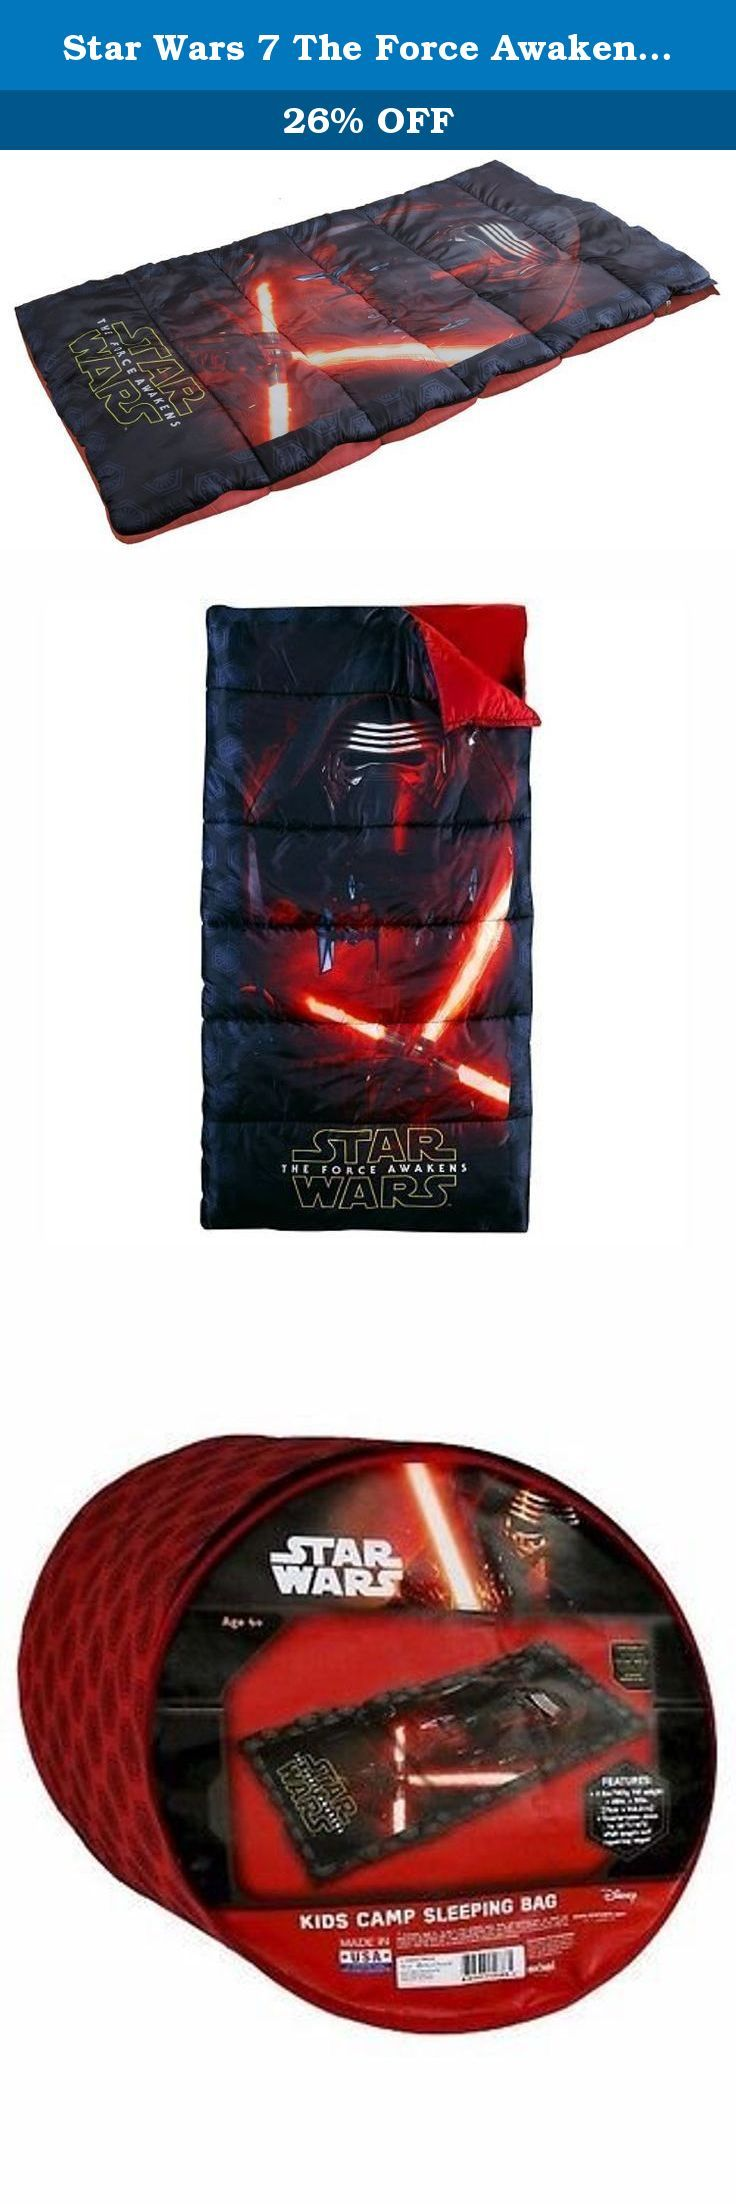 Star Wars 7 The Force Awakens kids camp sleeping bag. Dream of epic lightsaber battles with this cosmically cool Star Wars: Episode VII The Force Awakens sleeping bag. PRODUCT FEATURES Features thrilling Star Wars graphics.